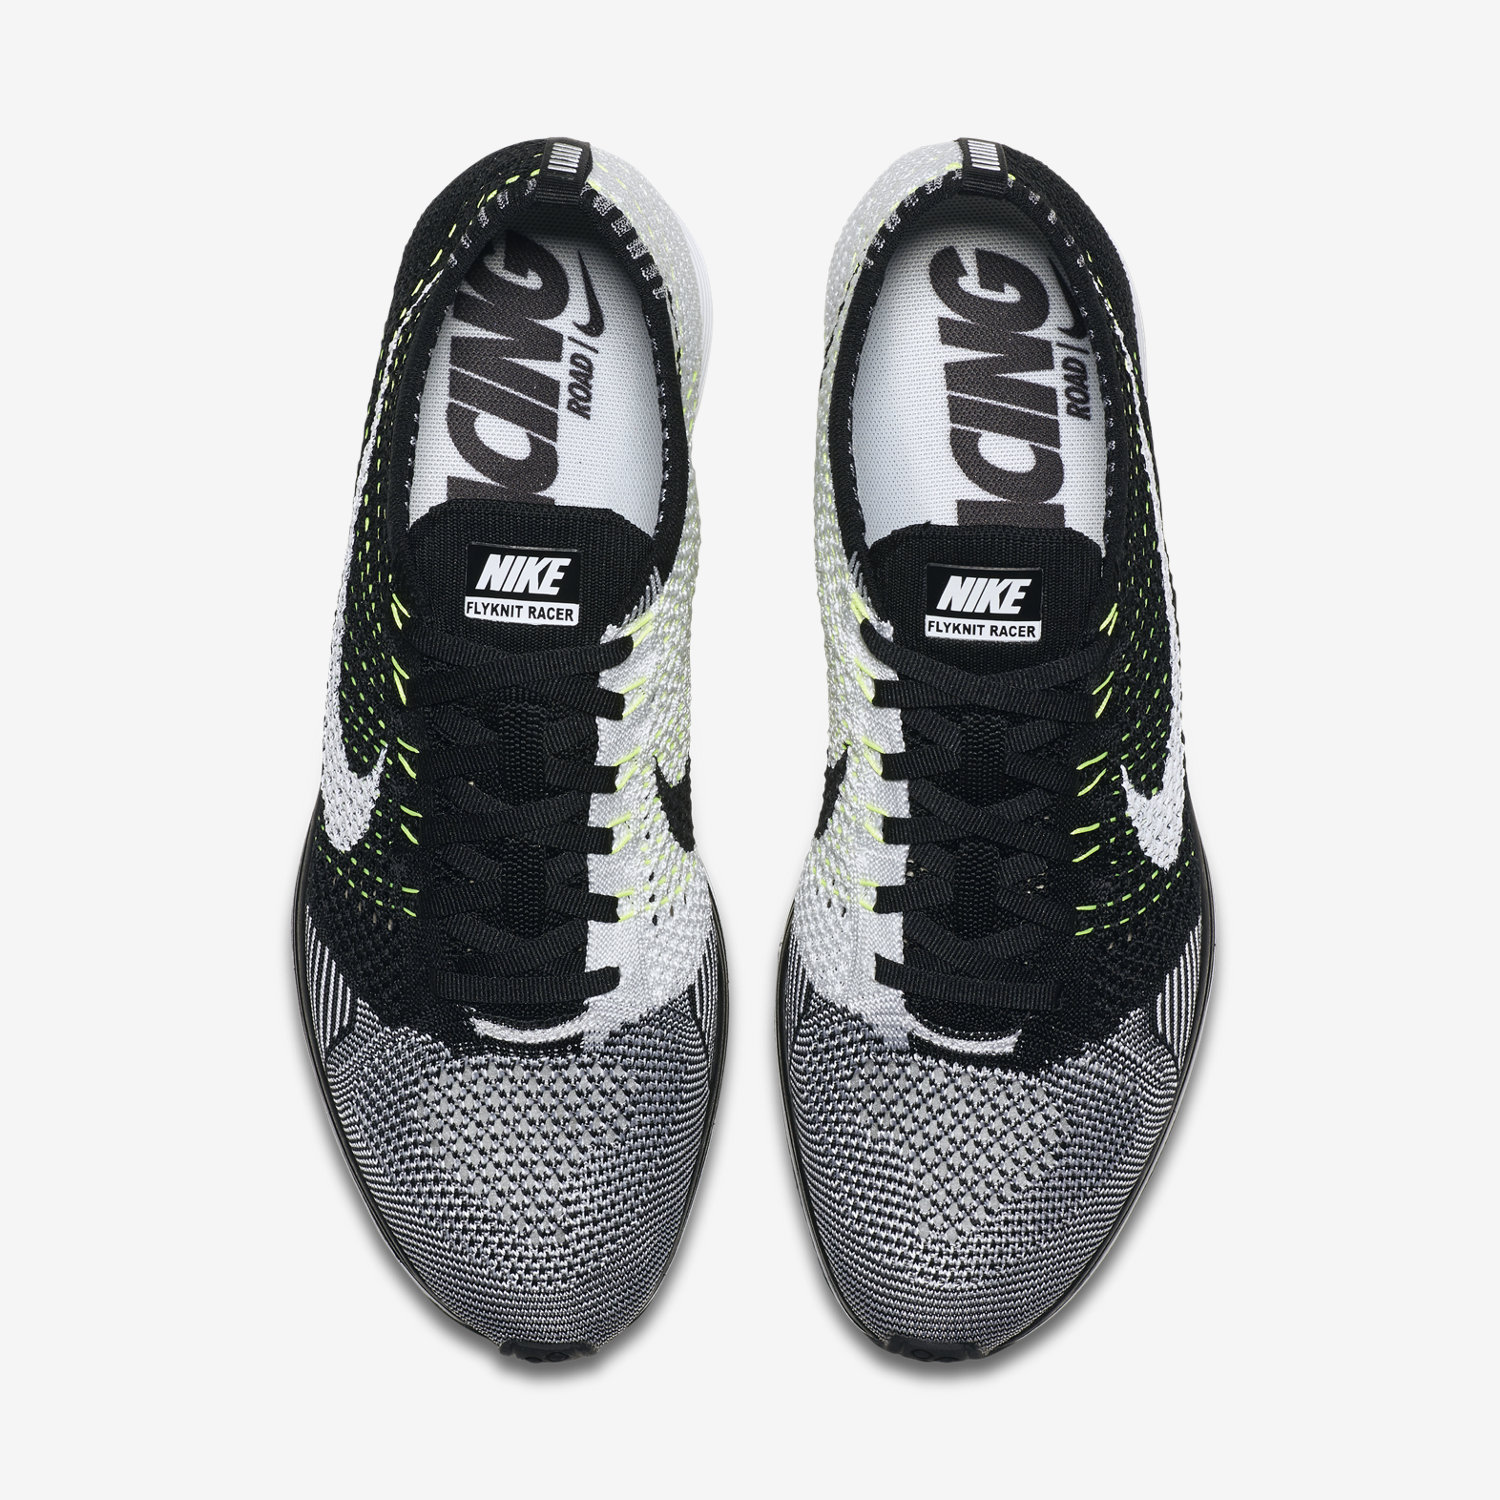 Nike Racer Flyknit Orca endeavouryachtservices.co.uk